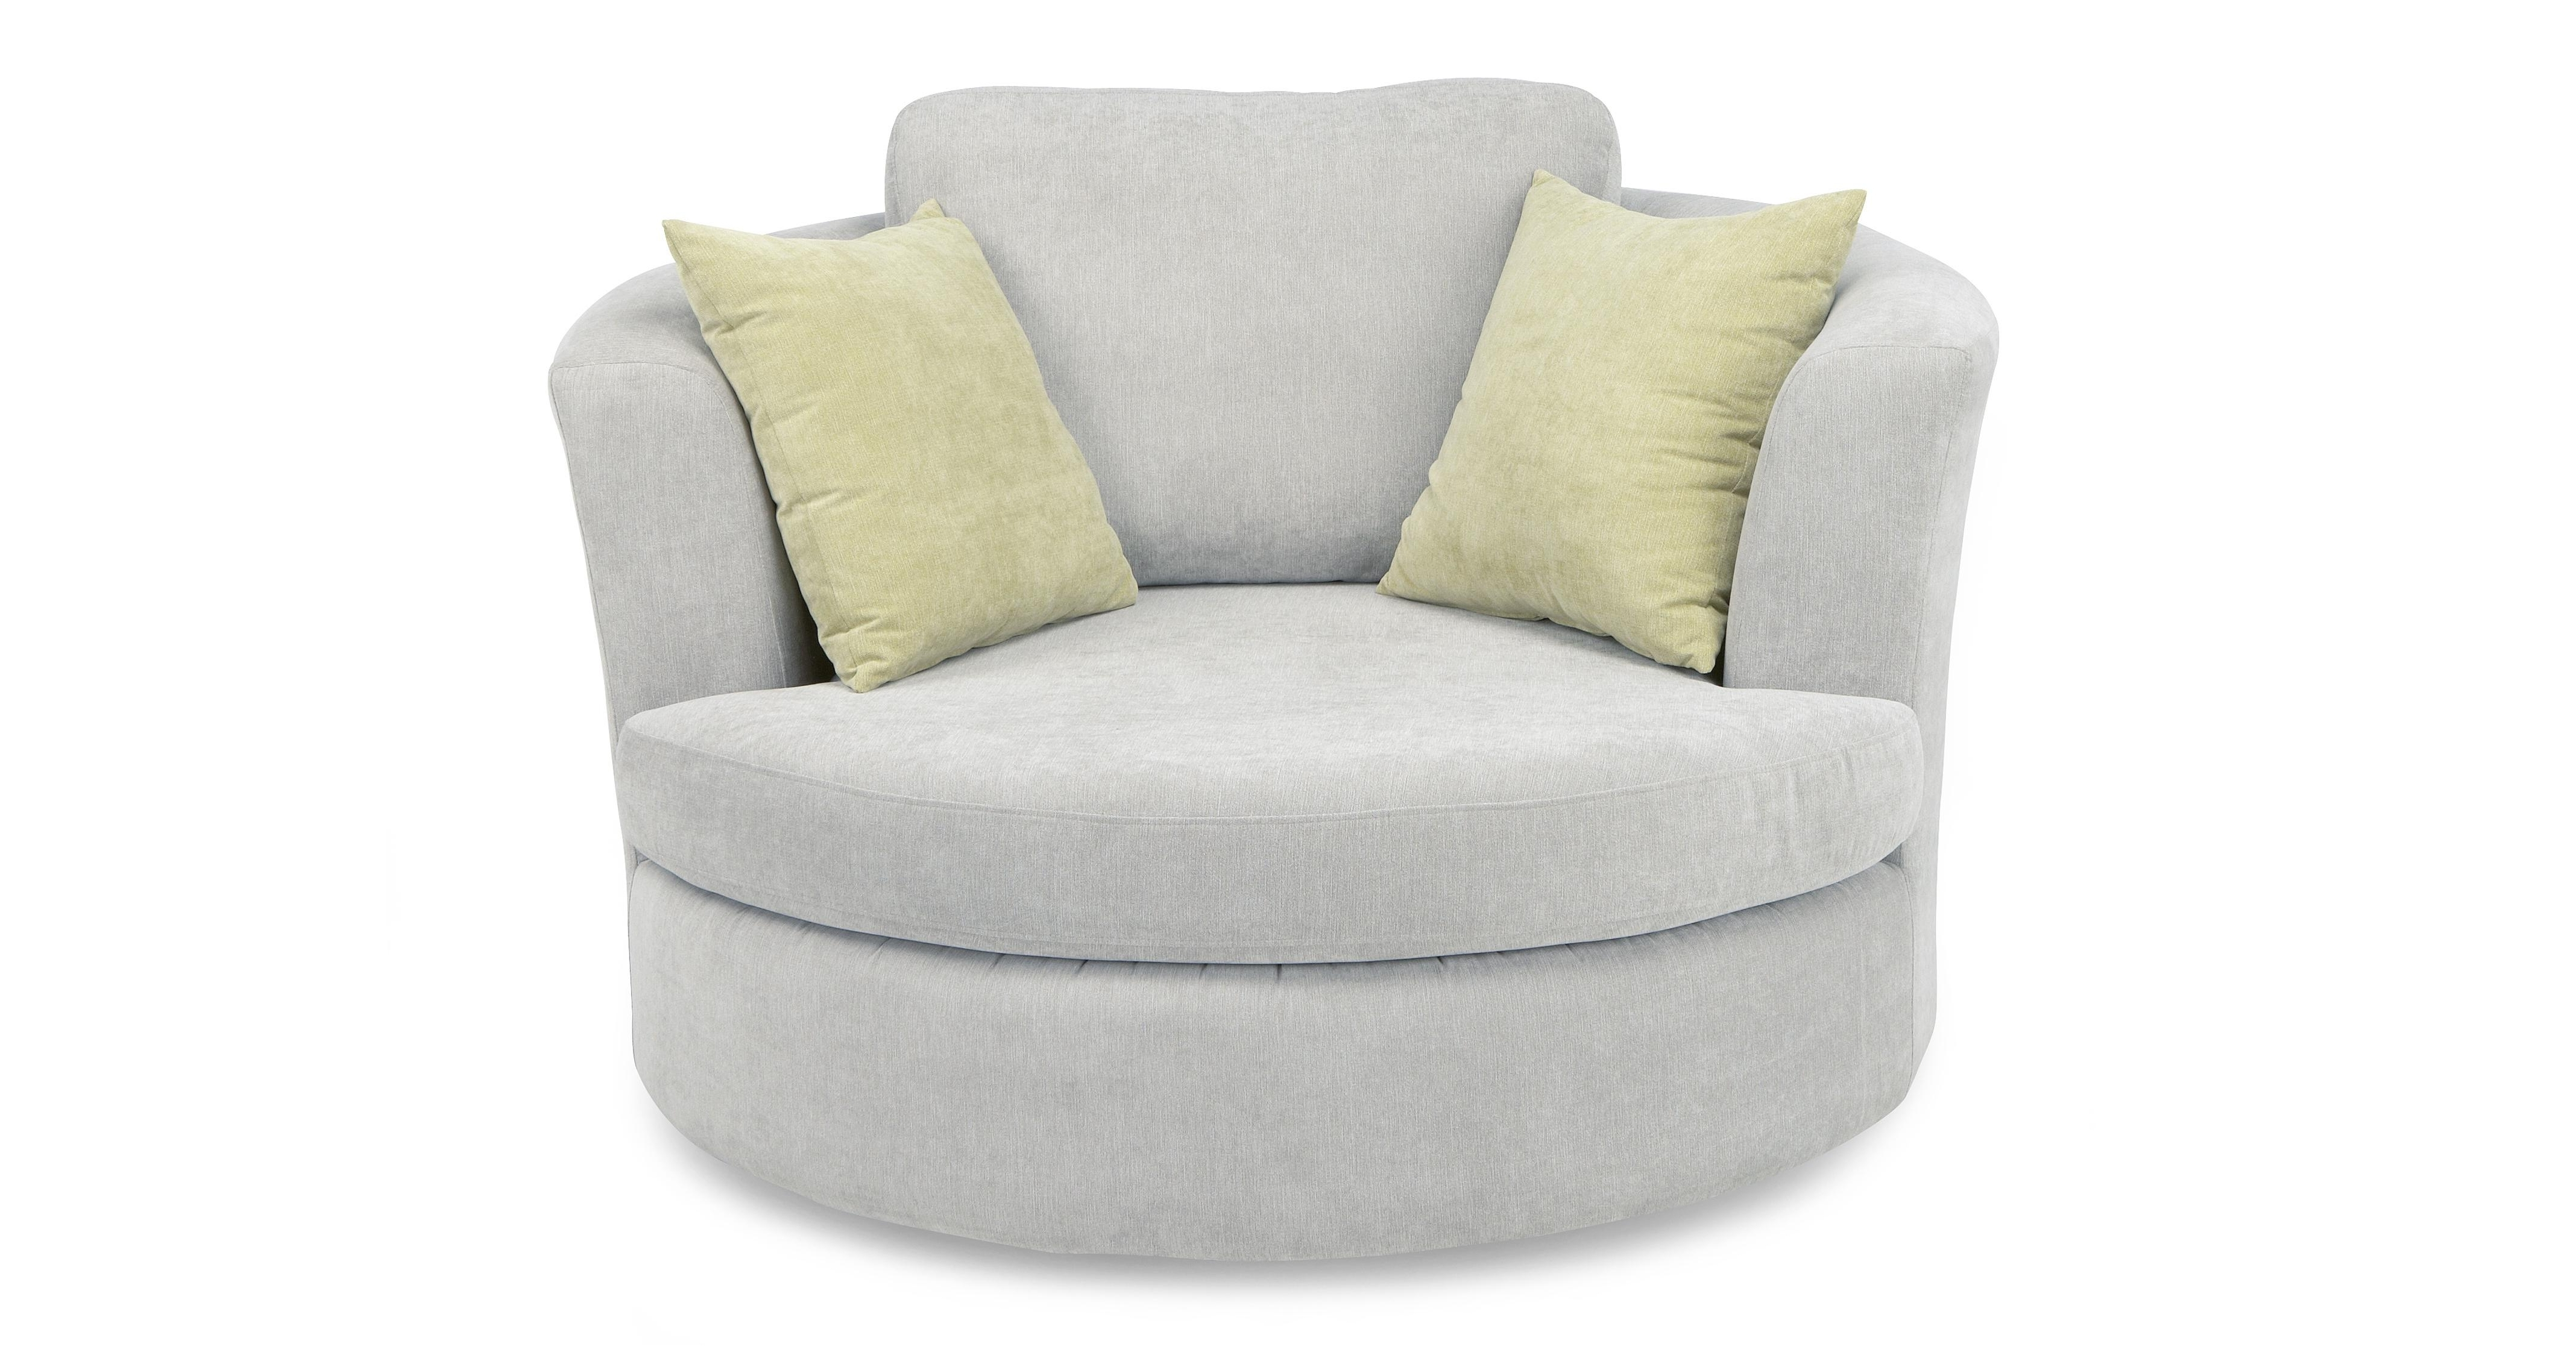 Cuddler Swivel Sofa Chairs Pertaining To 2018 Round Swivel Cuddle Chair (View 12 of 20)